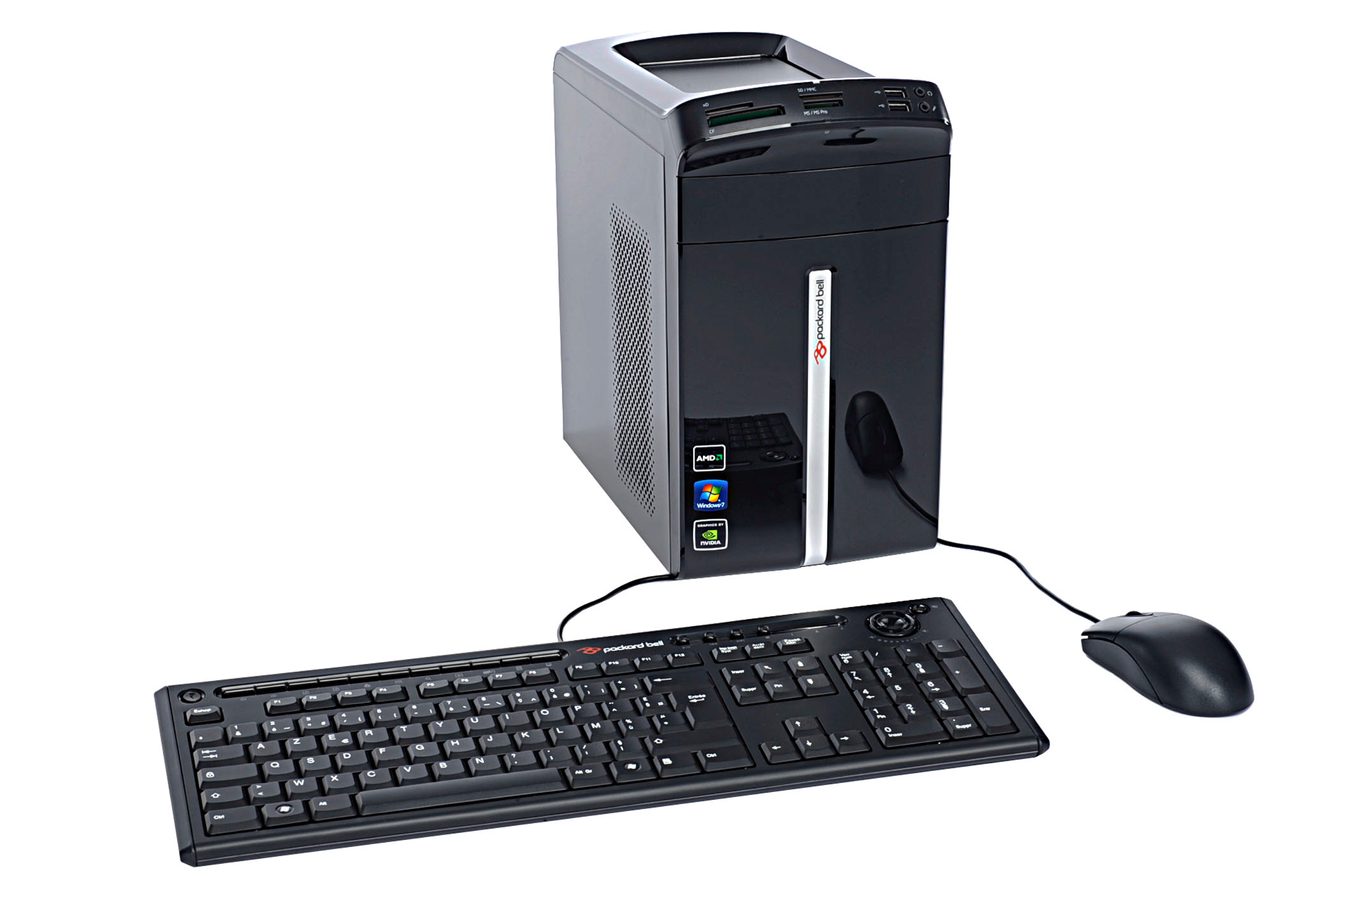 Pc de bureau packard bell imedia a6001 fr imediaa6001fr 3302067 darty - Darty informatique pc bureau ...